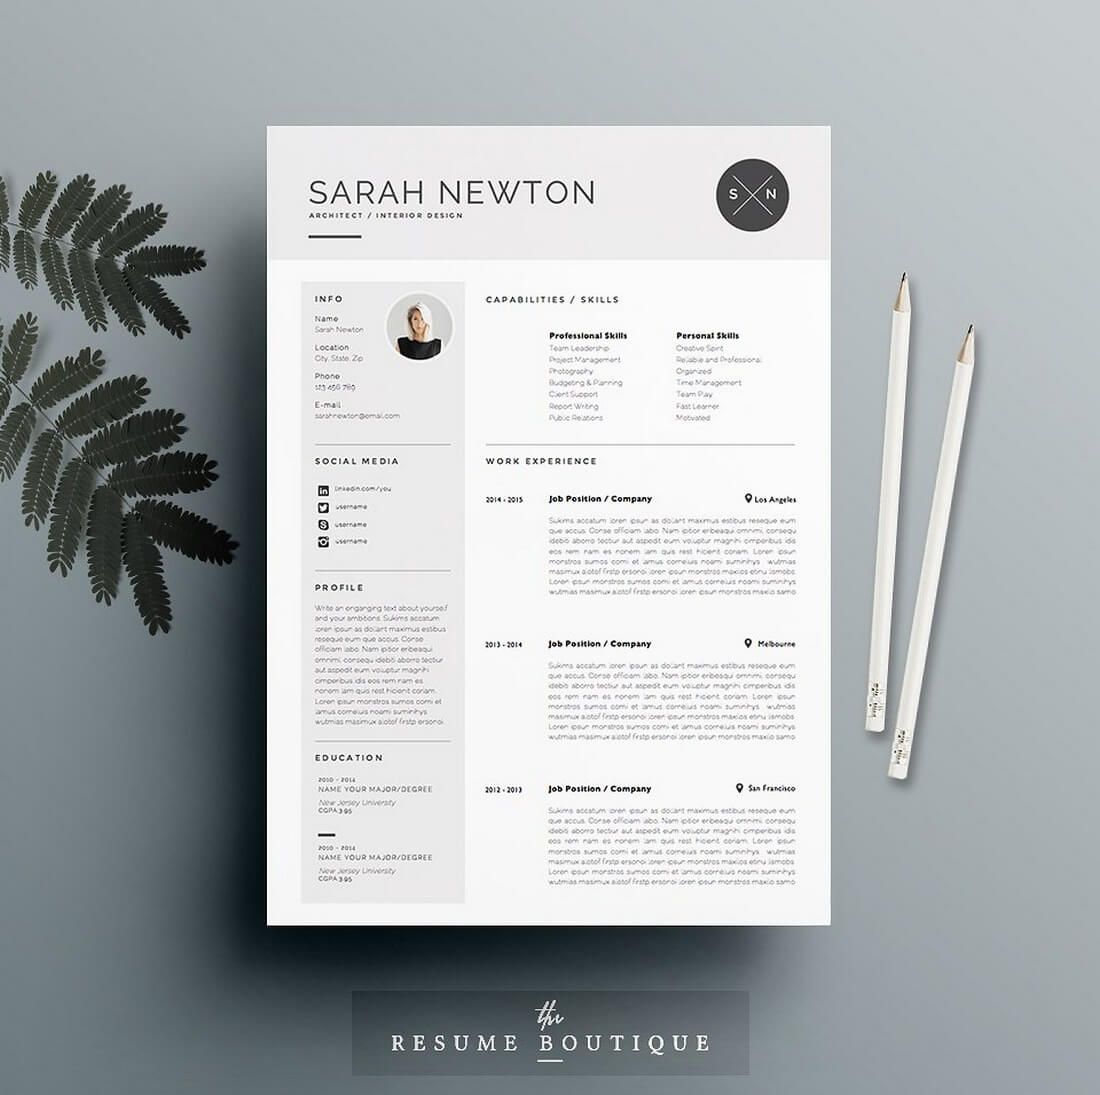 Comfortable 1 Page Resume Format Free Download Tall 10 Envelope Template Rectangular 15 Year Old Resume Sample 18th Invitation Templates Young 1and1 Templates Coloured2 Binder Spine Template 2 Page Resume Okay | Reference Letter Youth